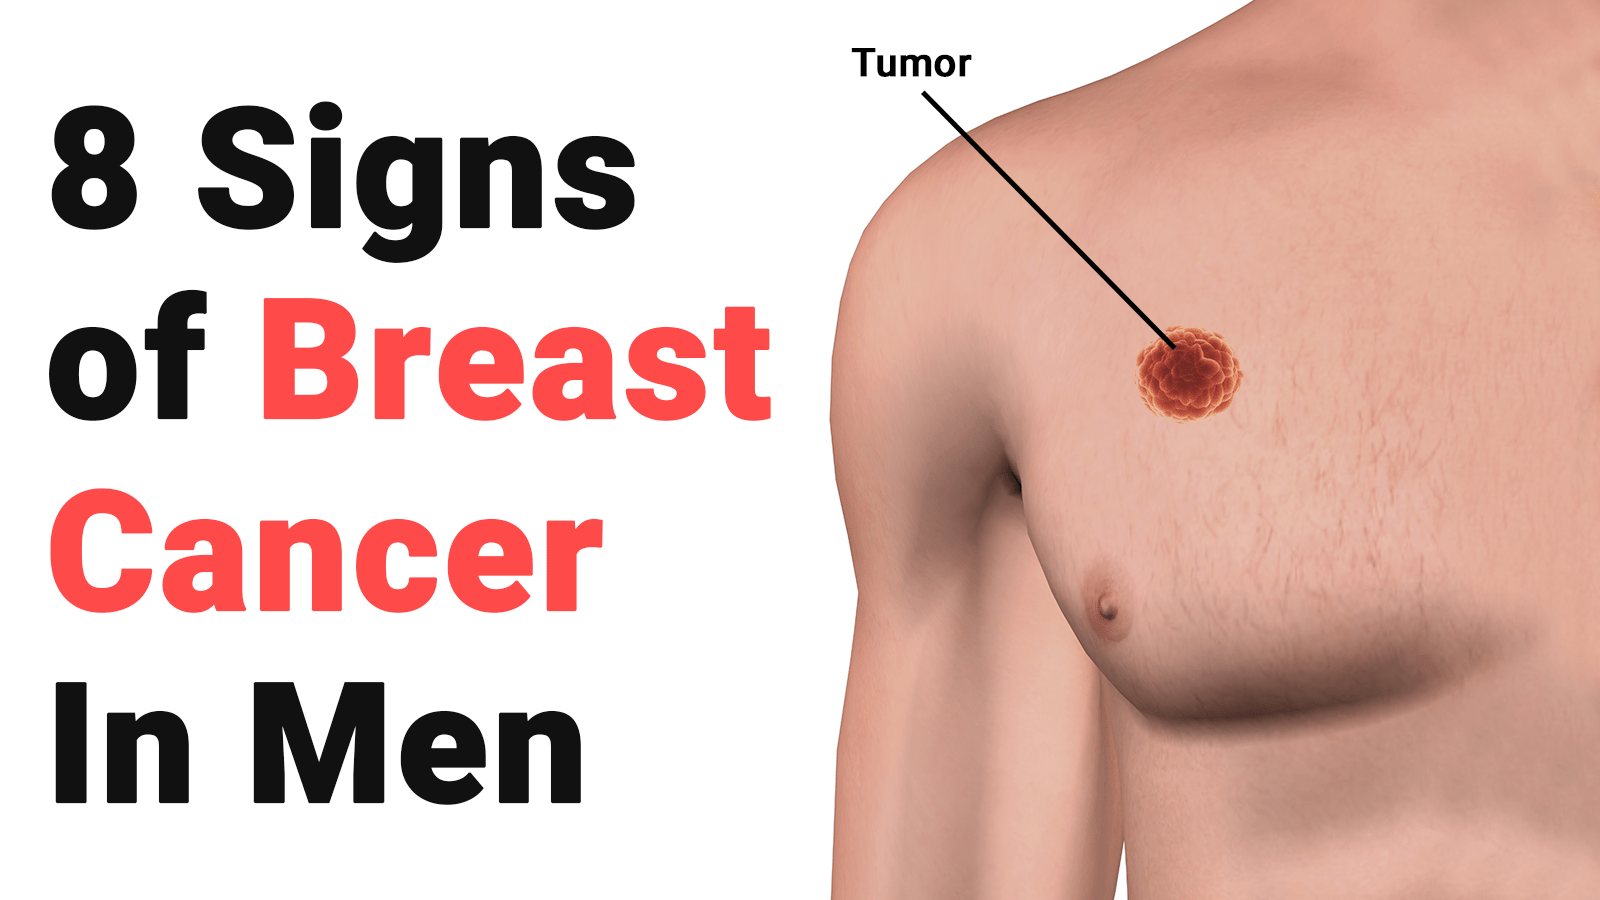 8 Signs of Breast Cancer In Men